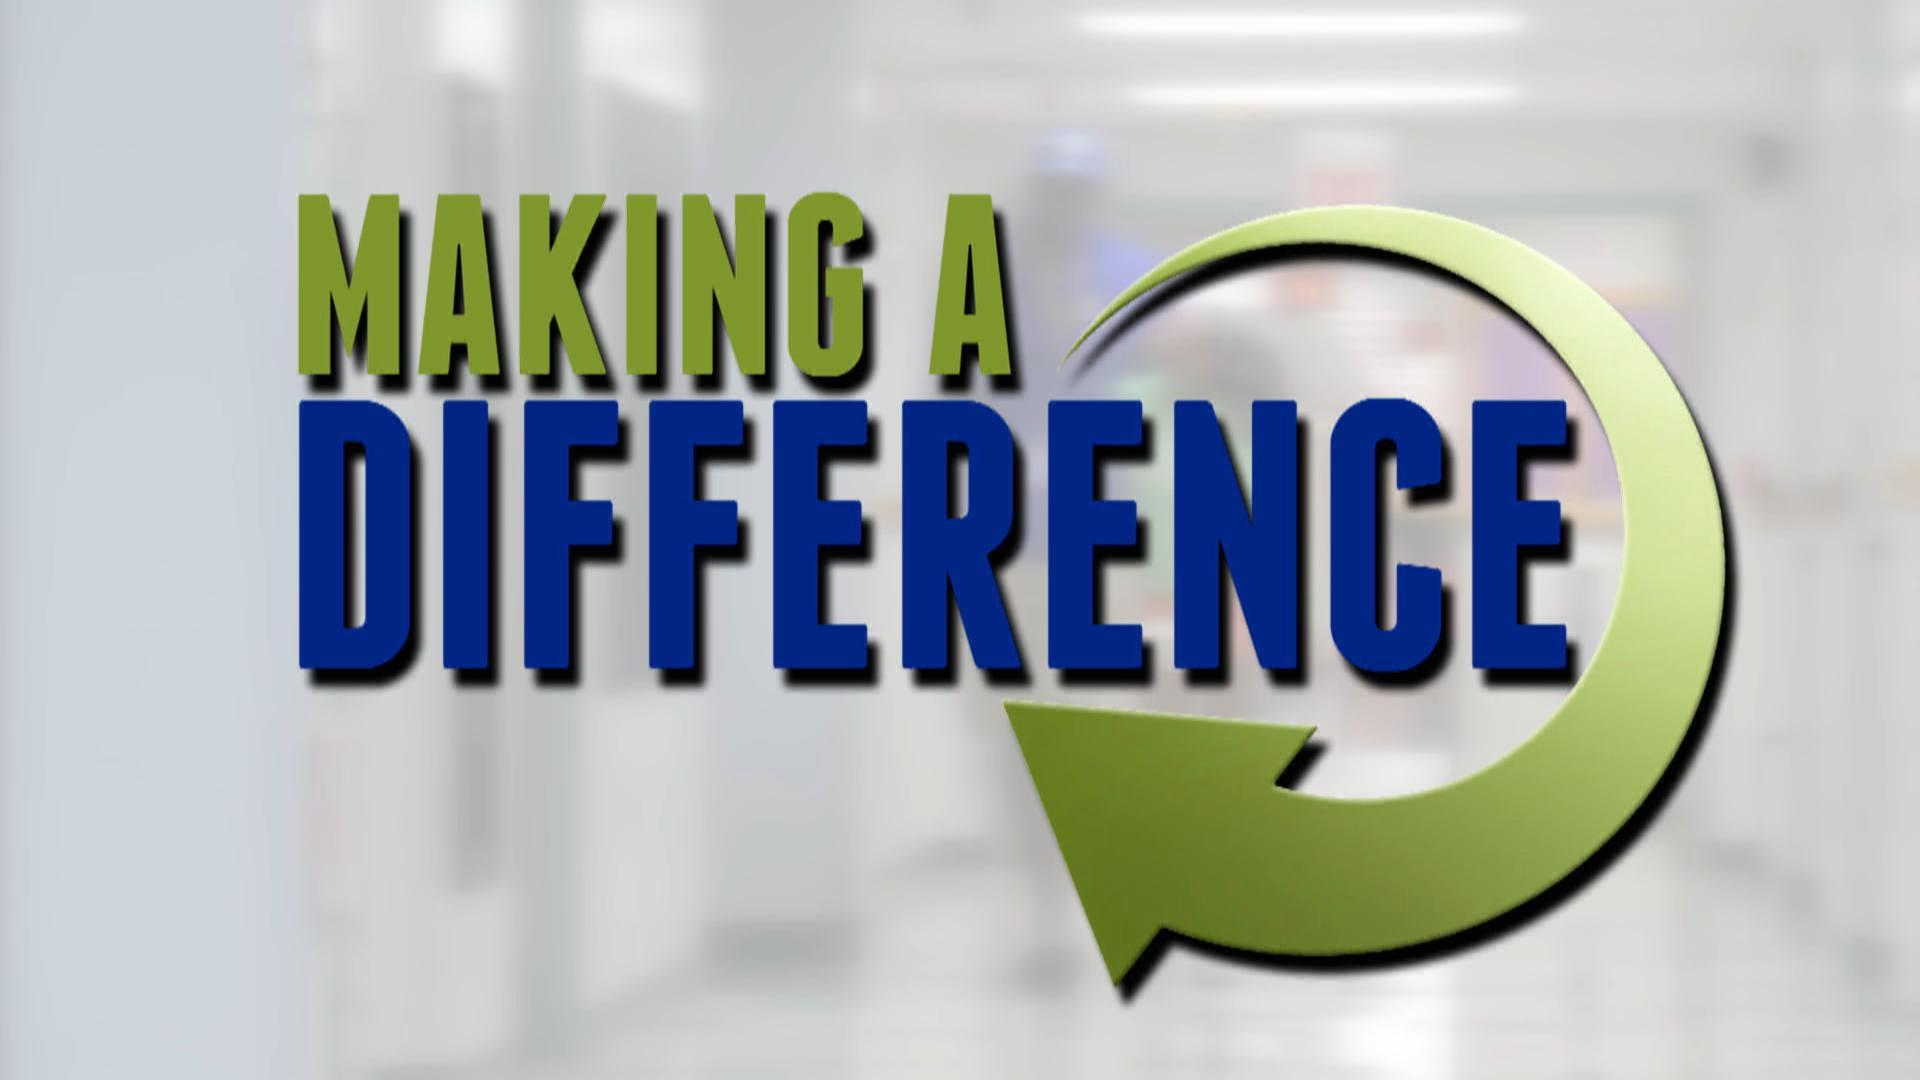 Making A Difference 2015